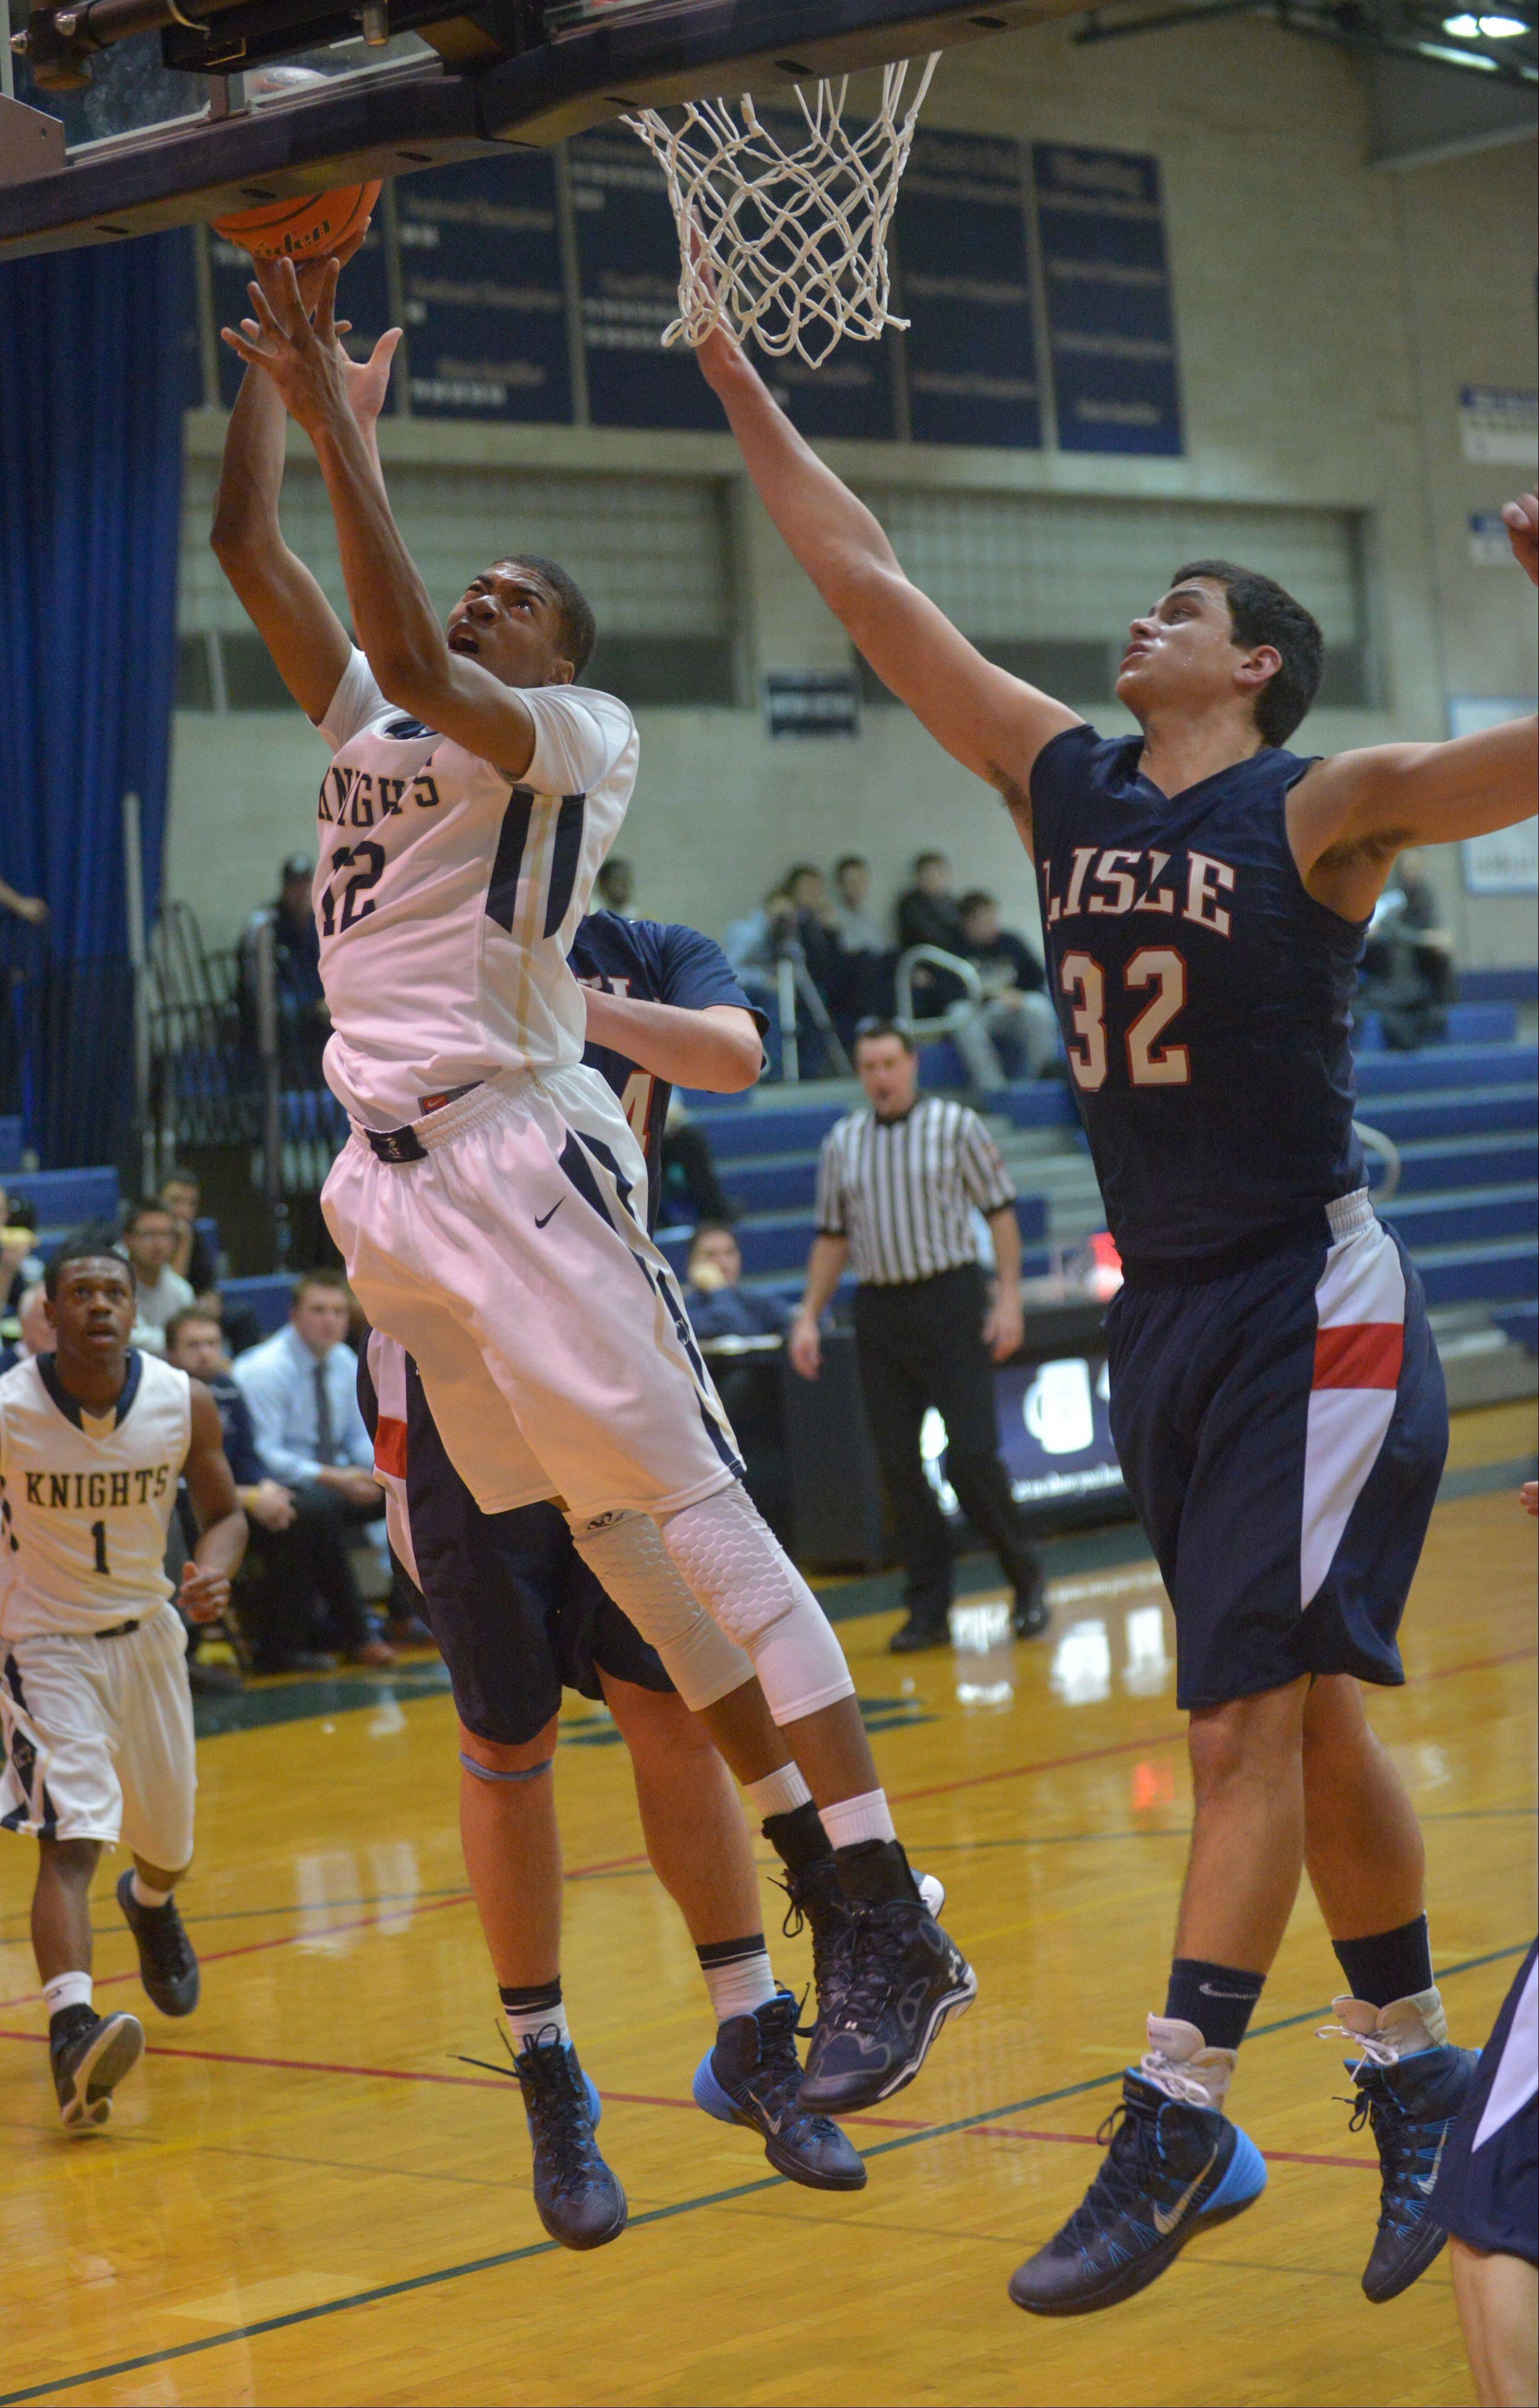 Images from the Lisle vs. IC Catholic Prep boys basketball game on Wednesday, Jan. 15, 2012.